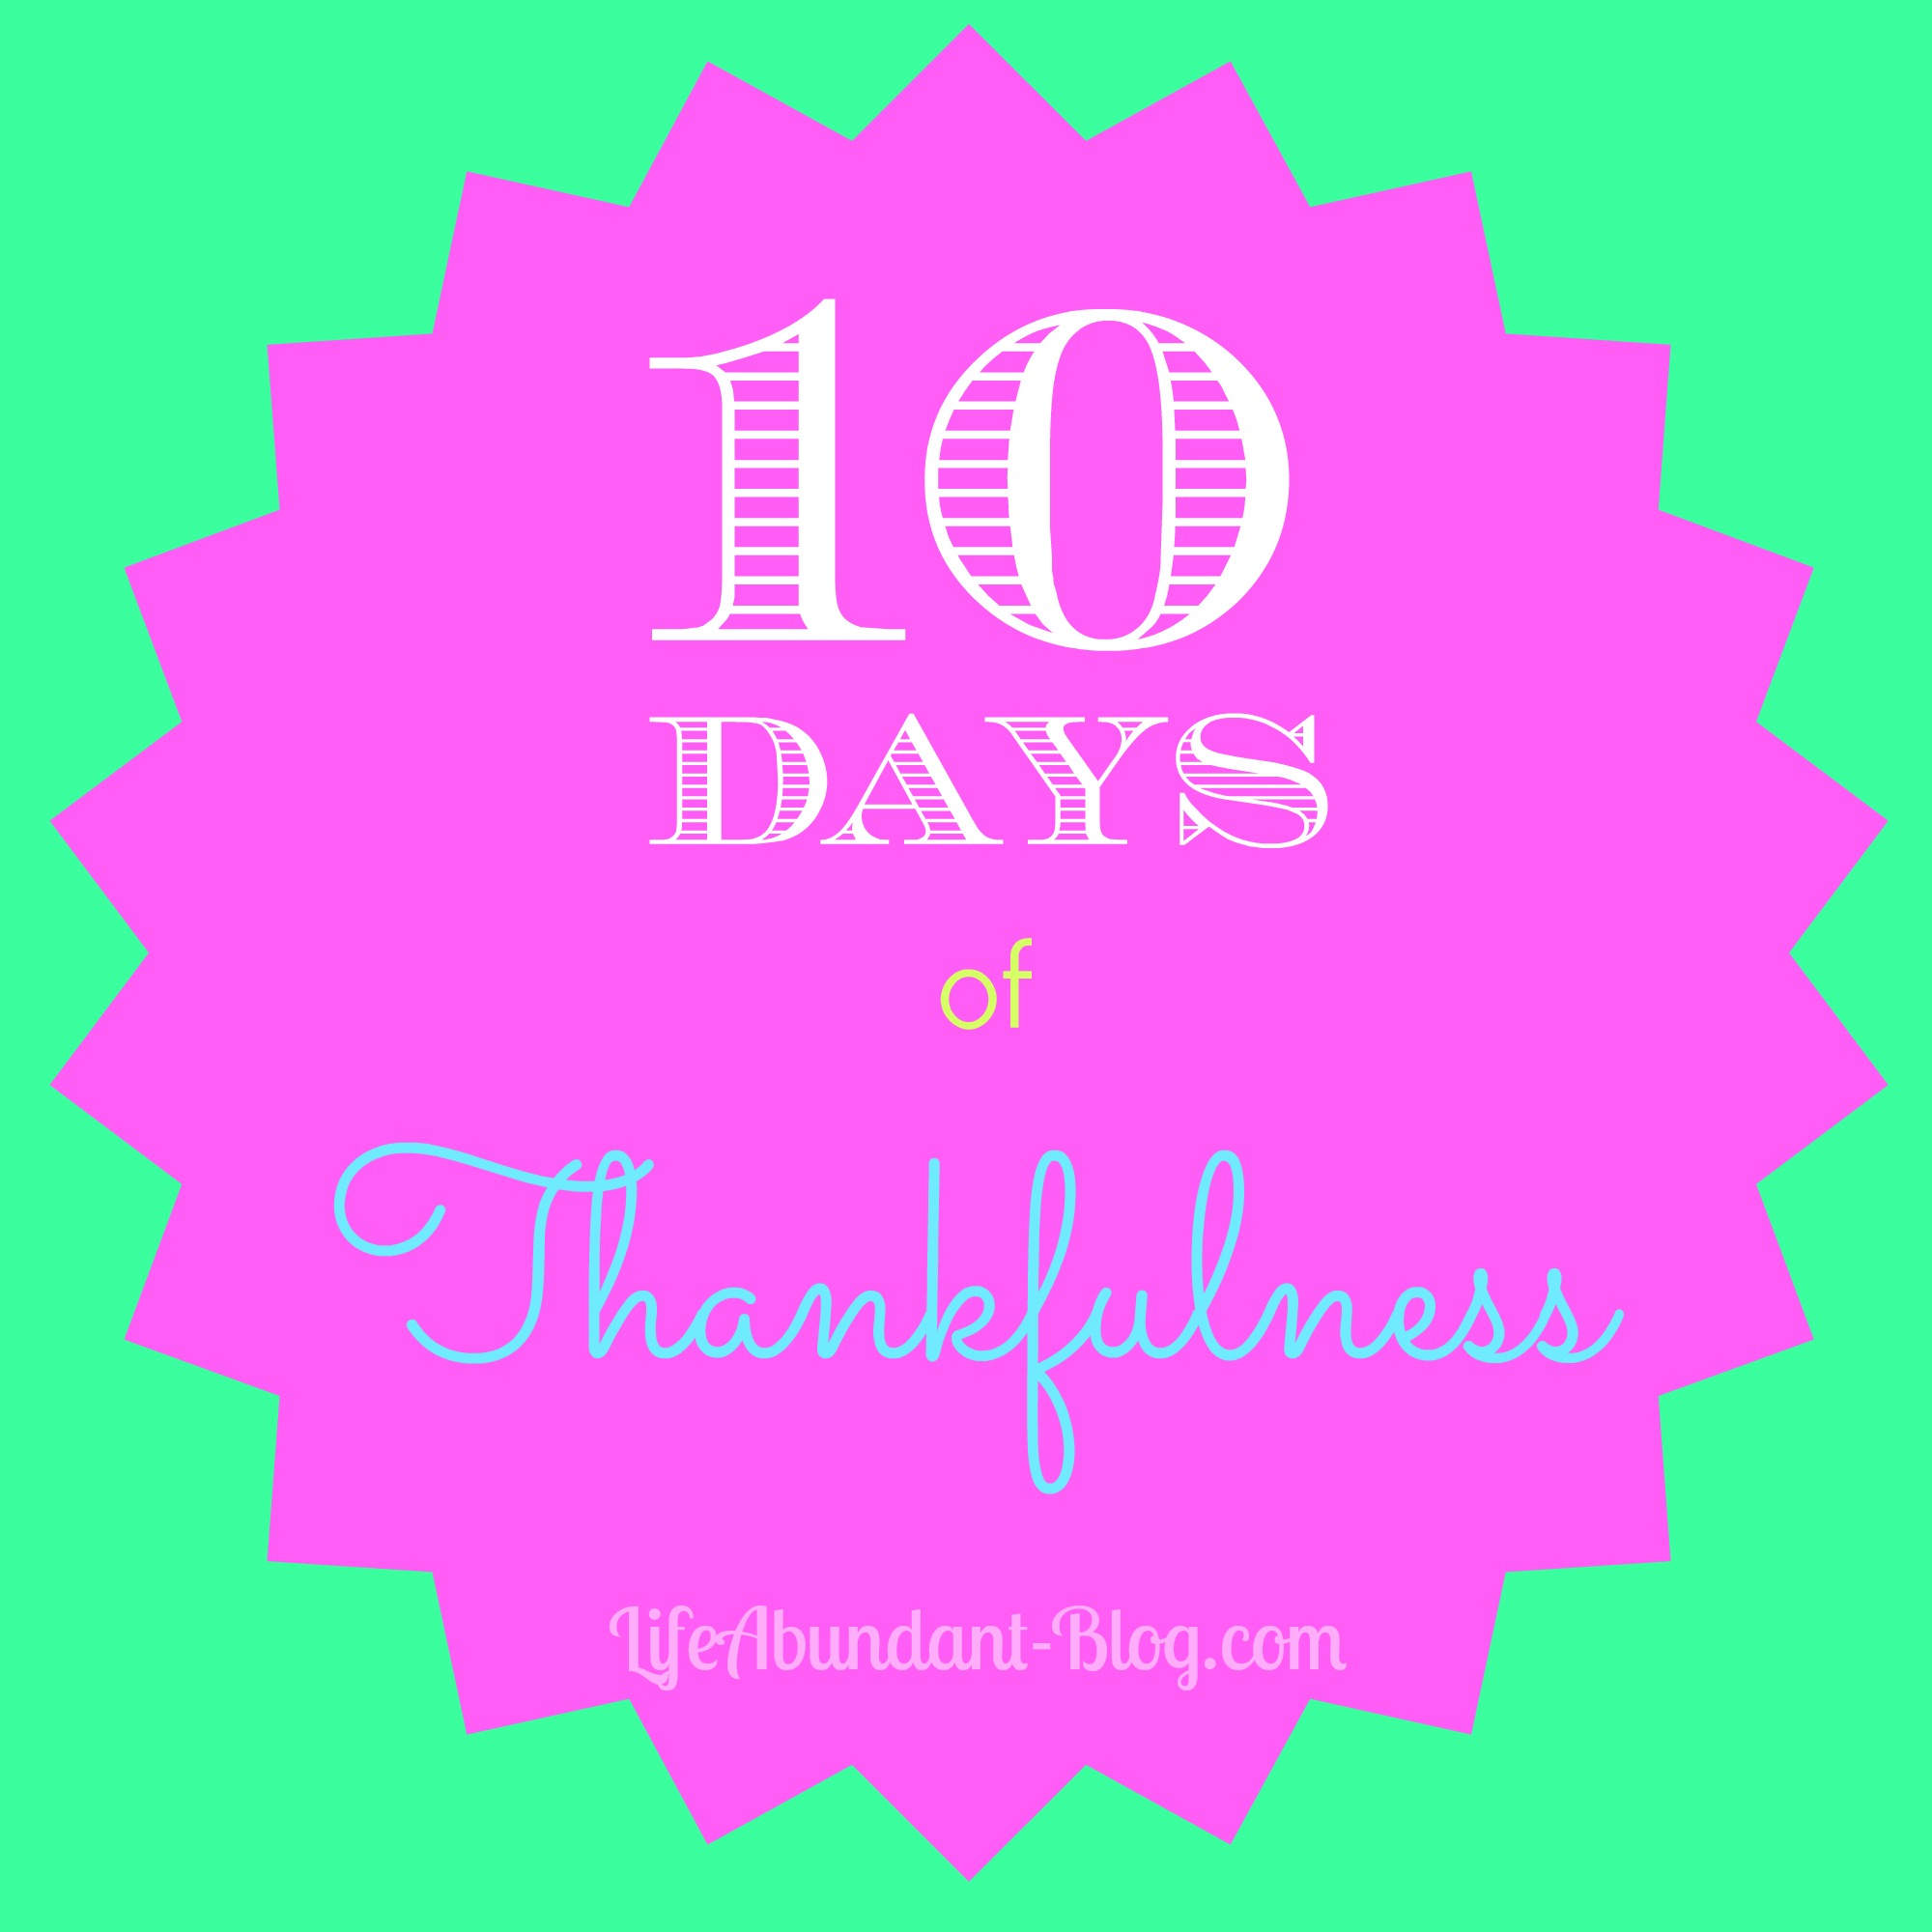 10 Days of Thanks